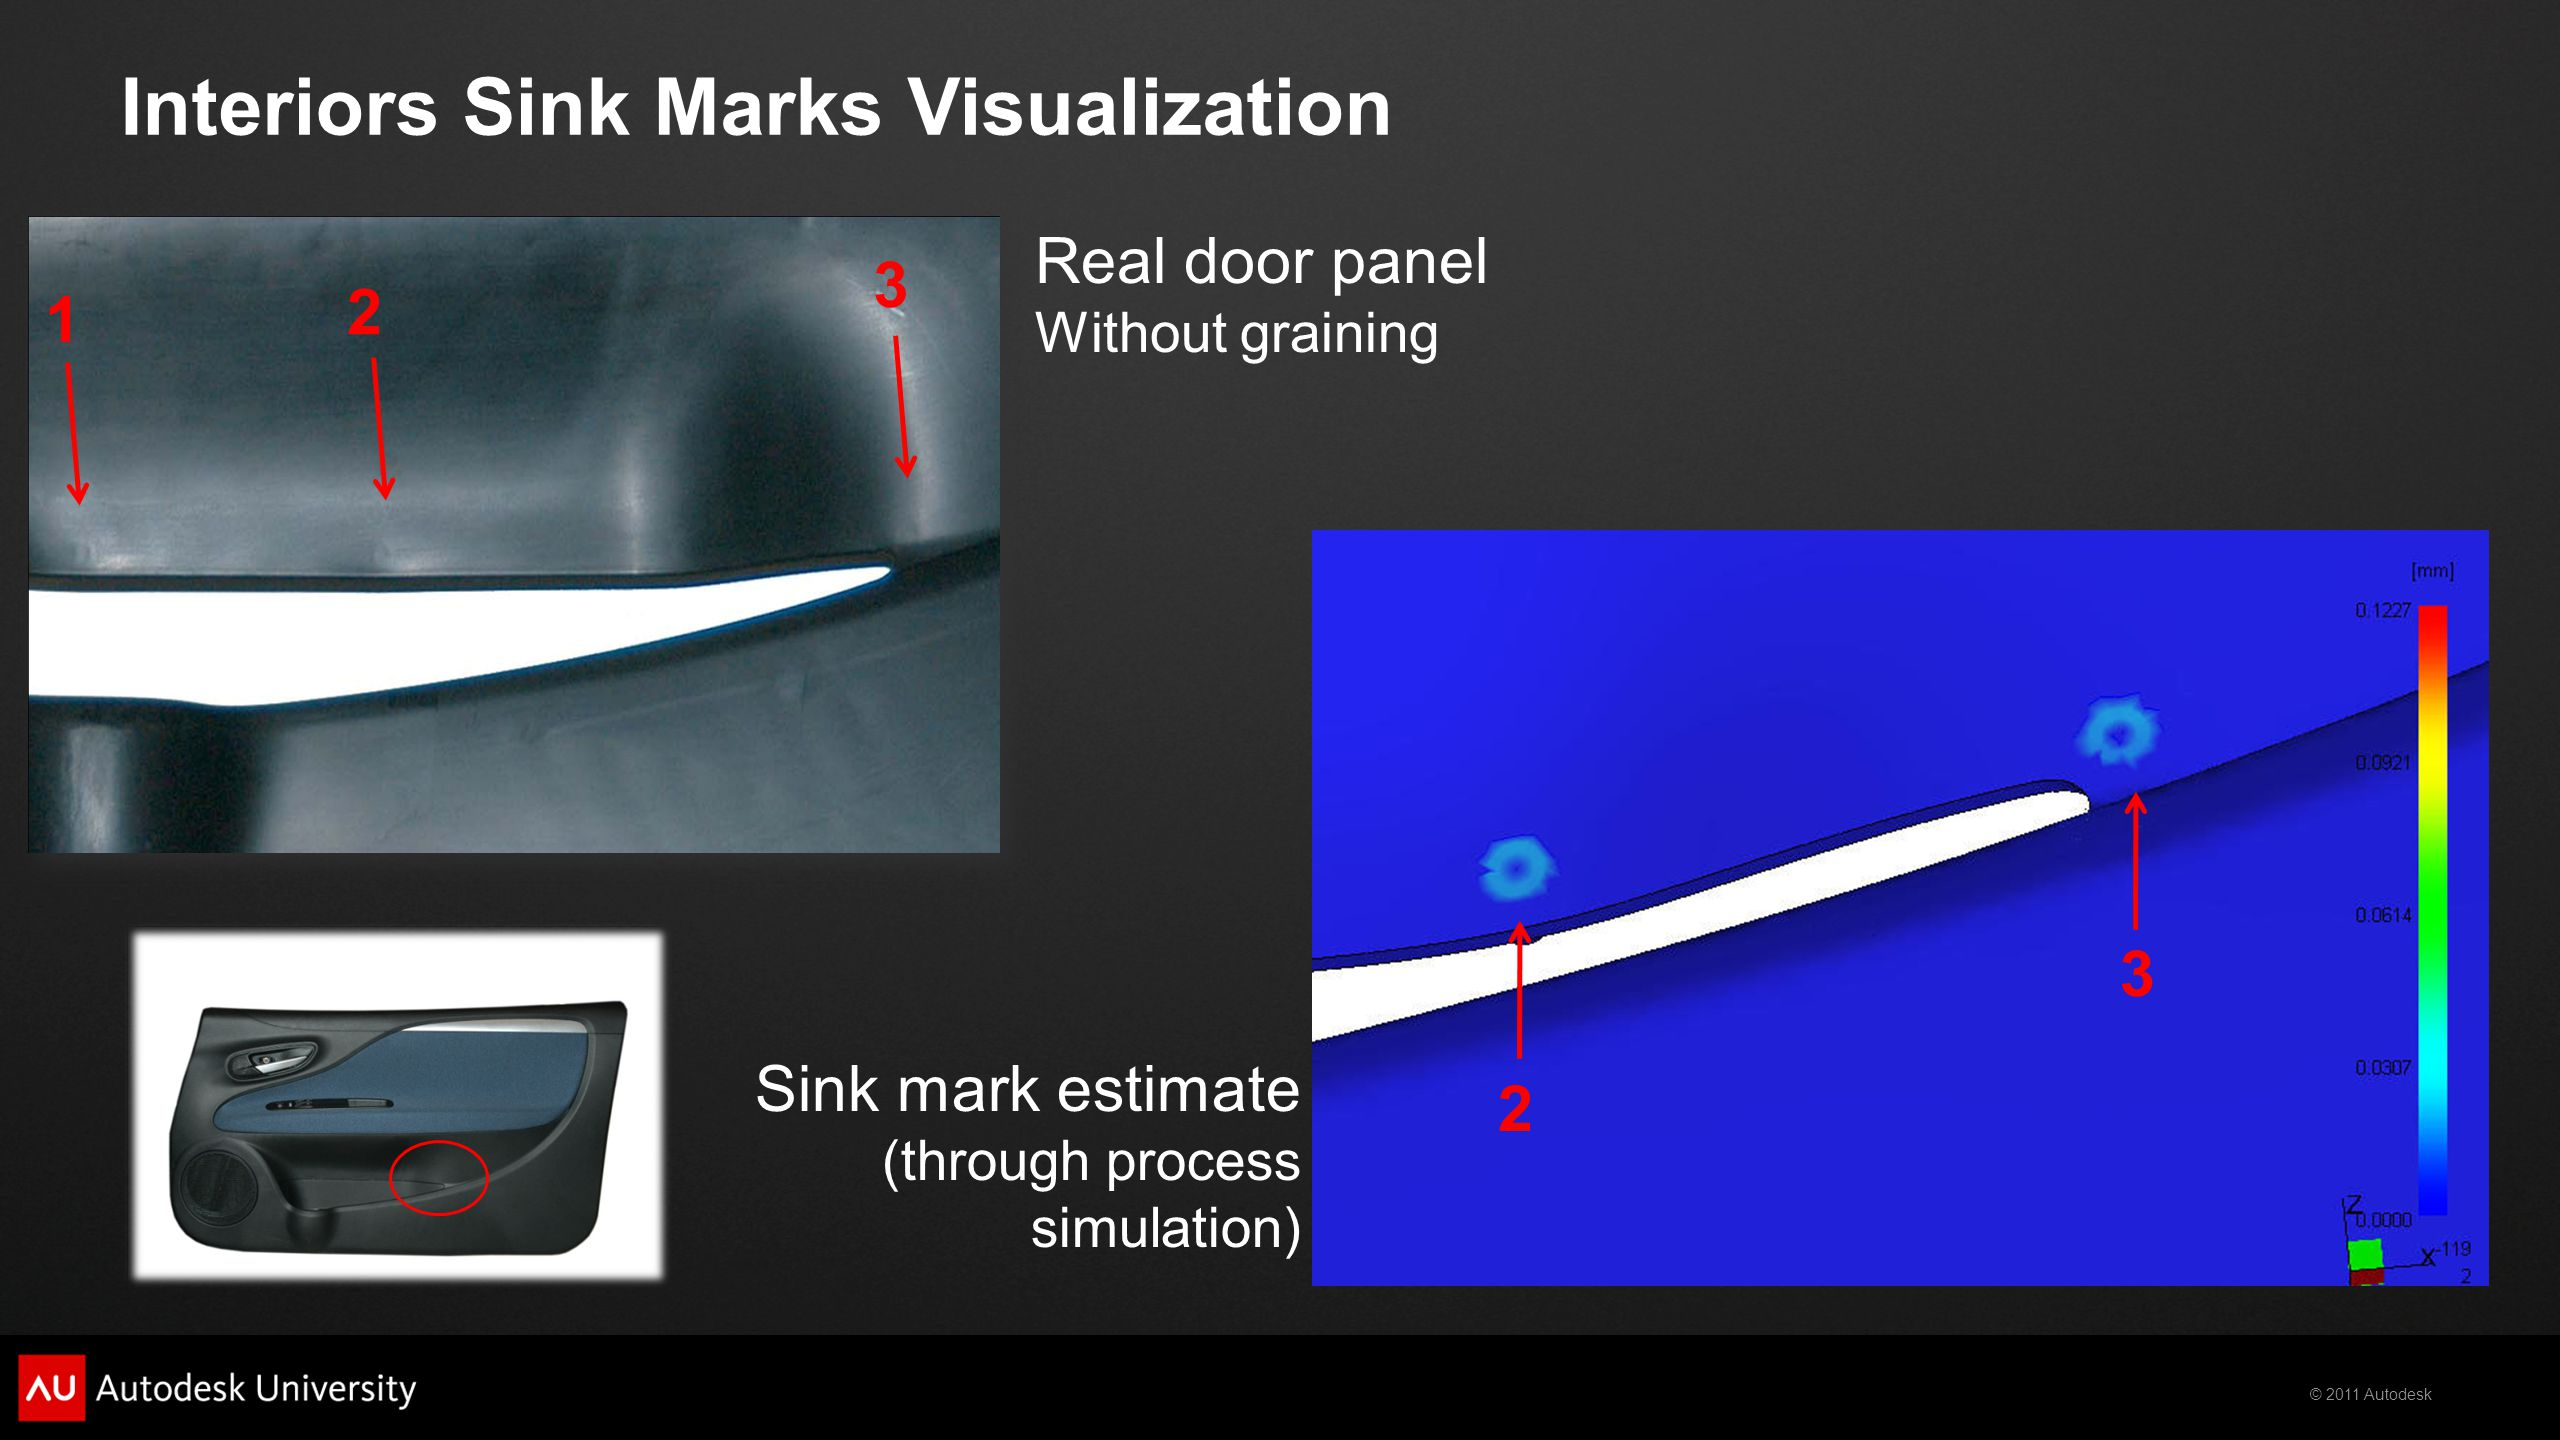 © 2011 Autodesk 2 3 1 2 3 Real door panel Without graining Sink mark estimate (through process simulation) Interiors Sink Marks Visualization